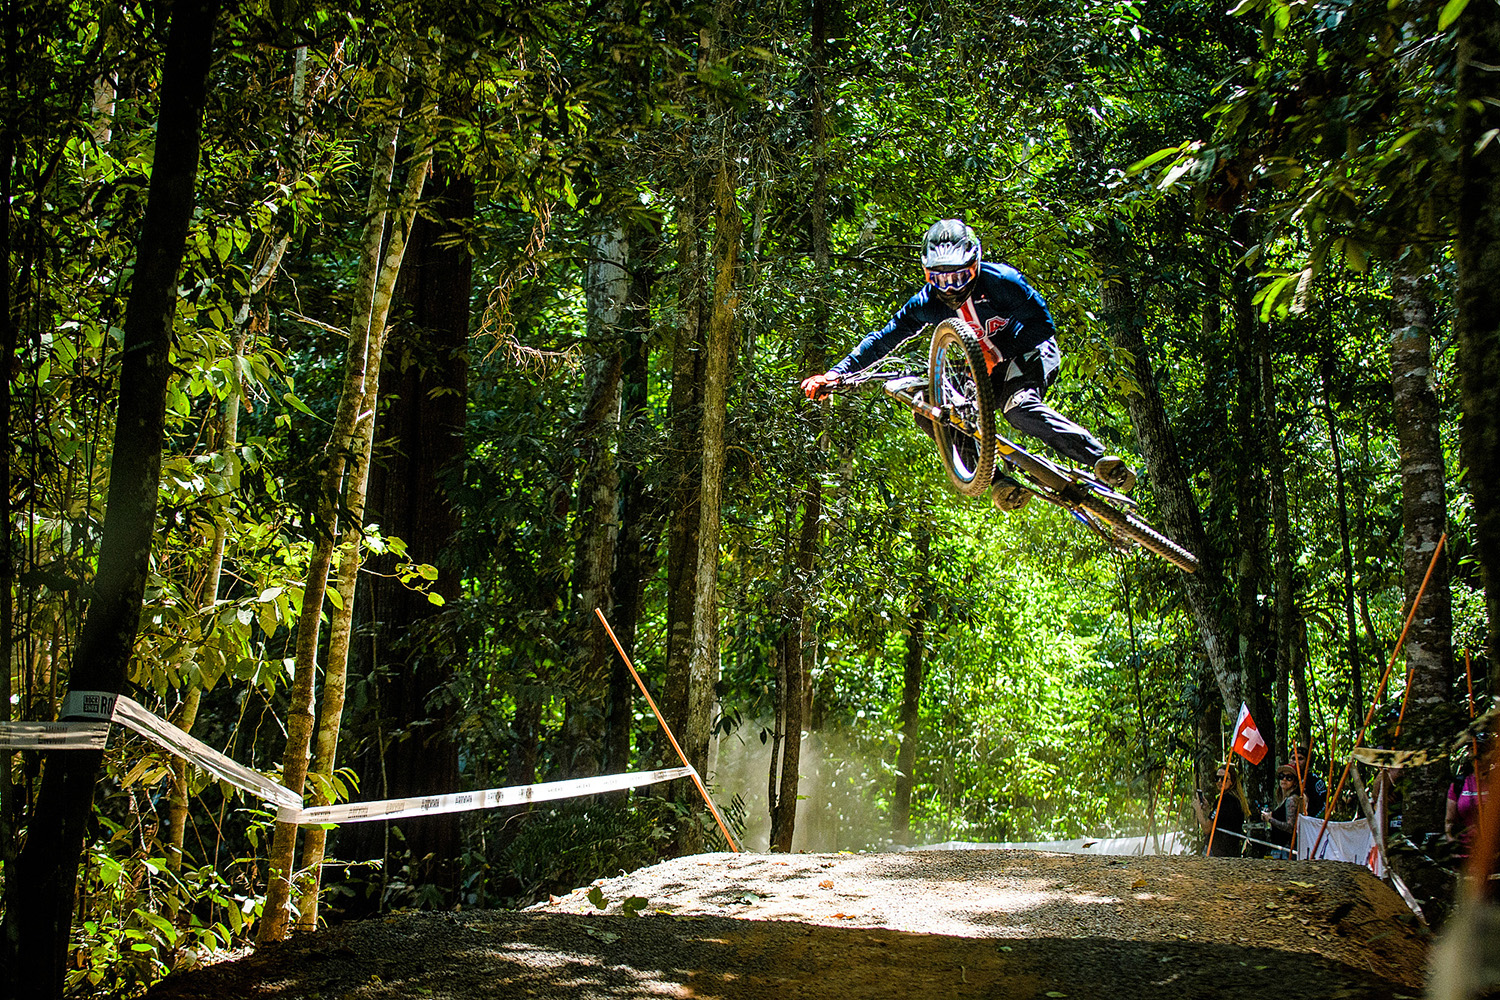 Aaron Gwin bagged himself his first ever World Champs medal